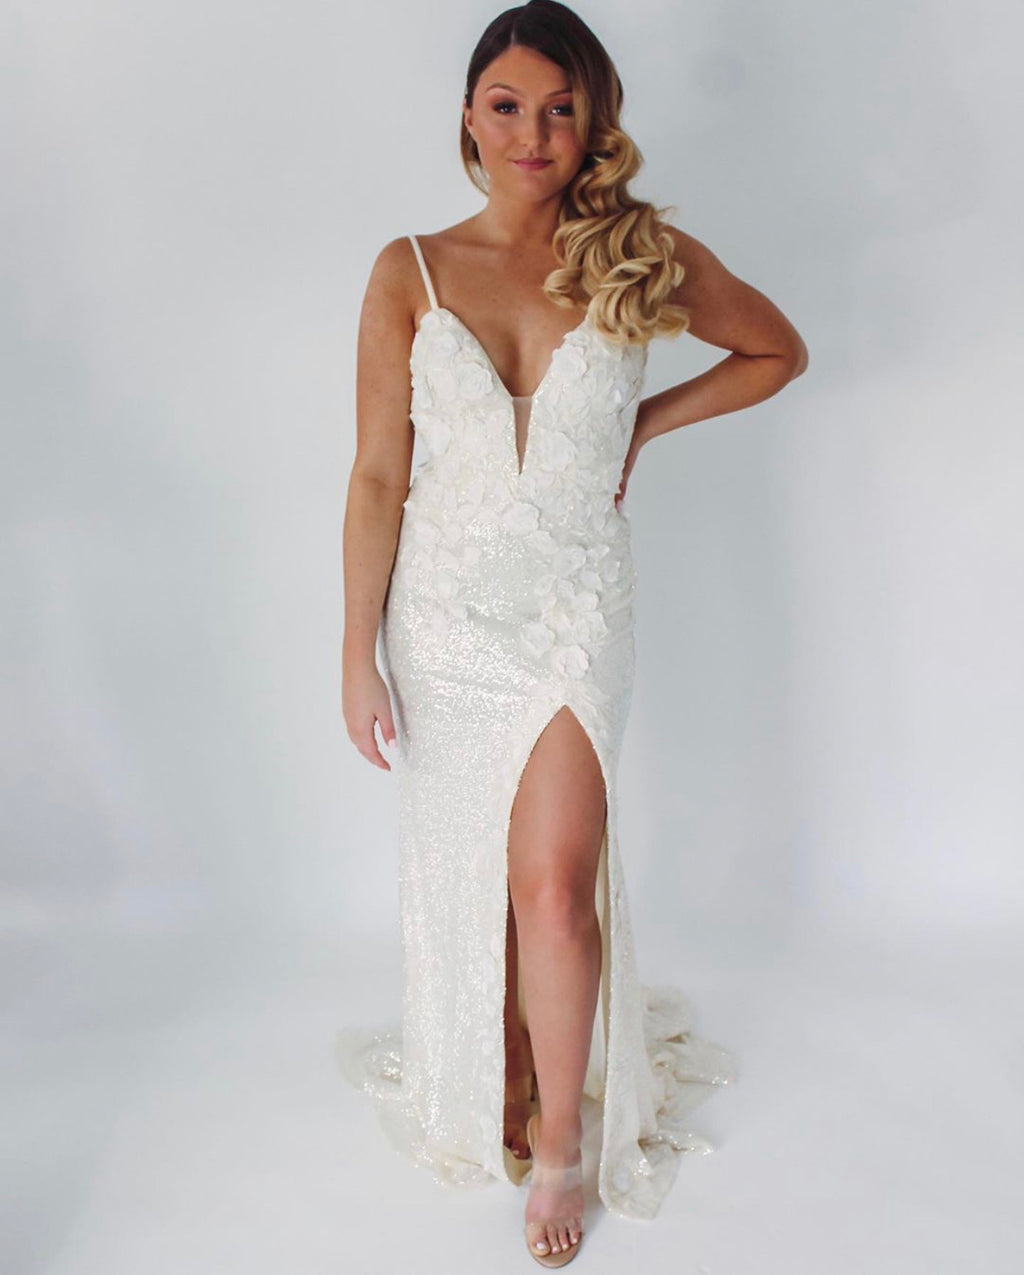 Jovani Sample Gown - Cream